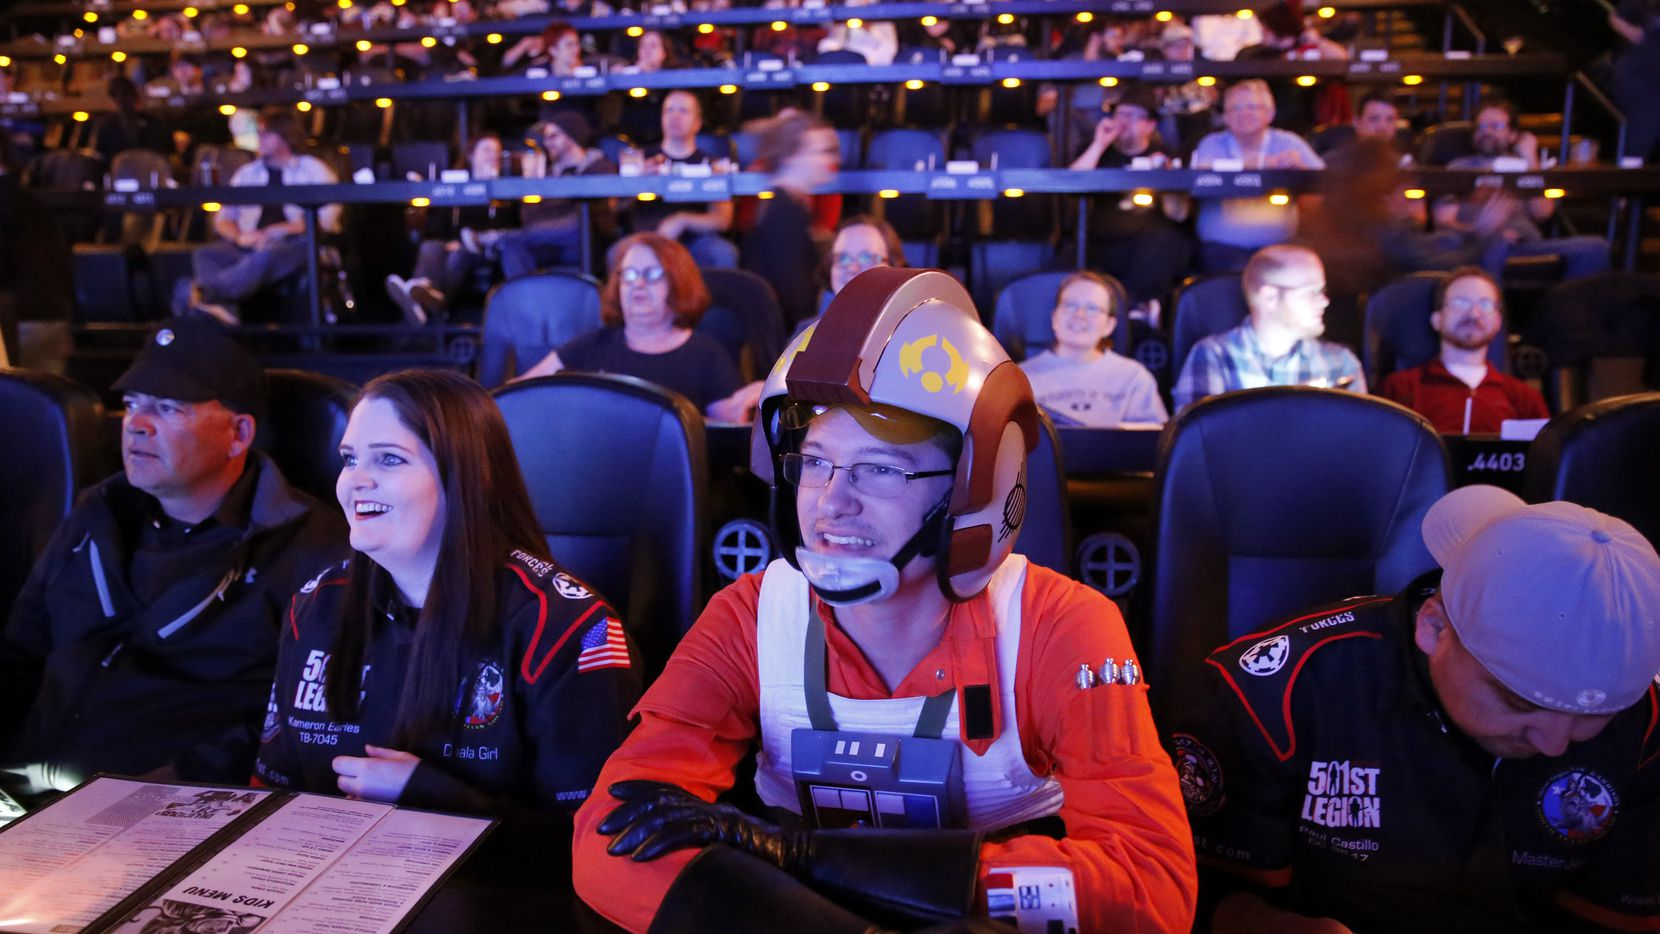 Jacob Degan of College Station, Texas, dressed as Star Wars X-wing Starfighter character, enjoys the pre show entertainment before the first showing of Star Wars: The Force Awakens movie at the Alamo Drafthouse Cinema in Richardson.